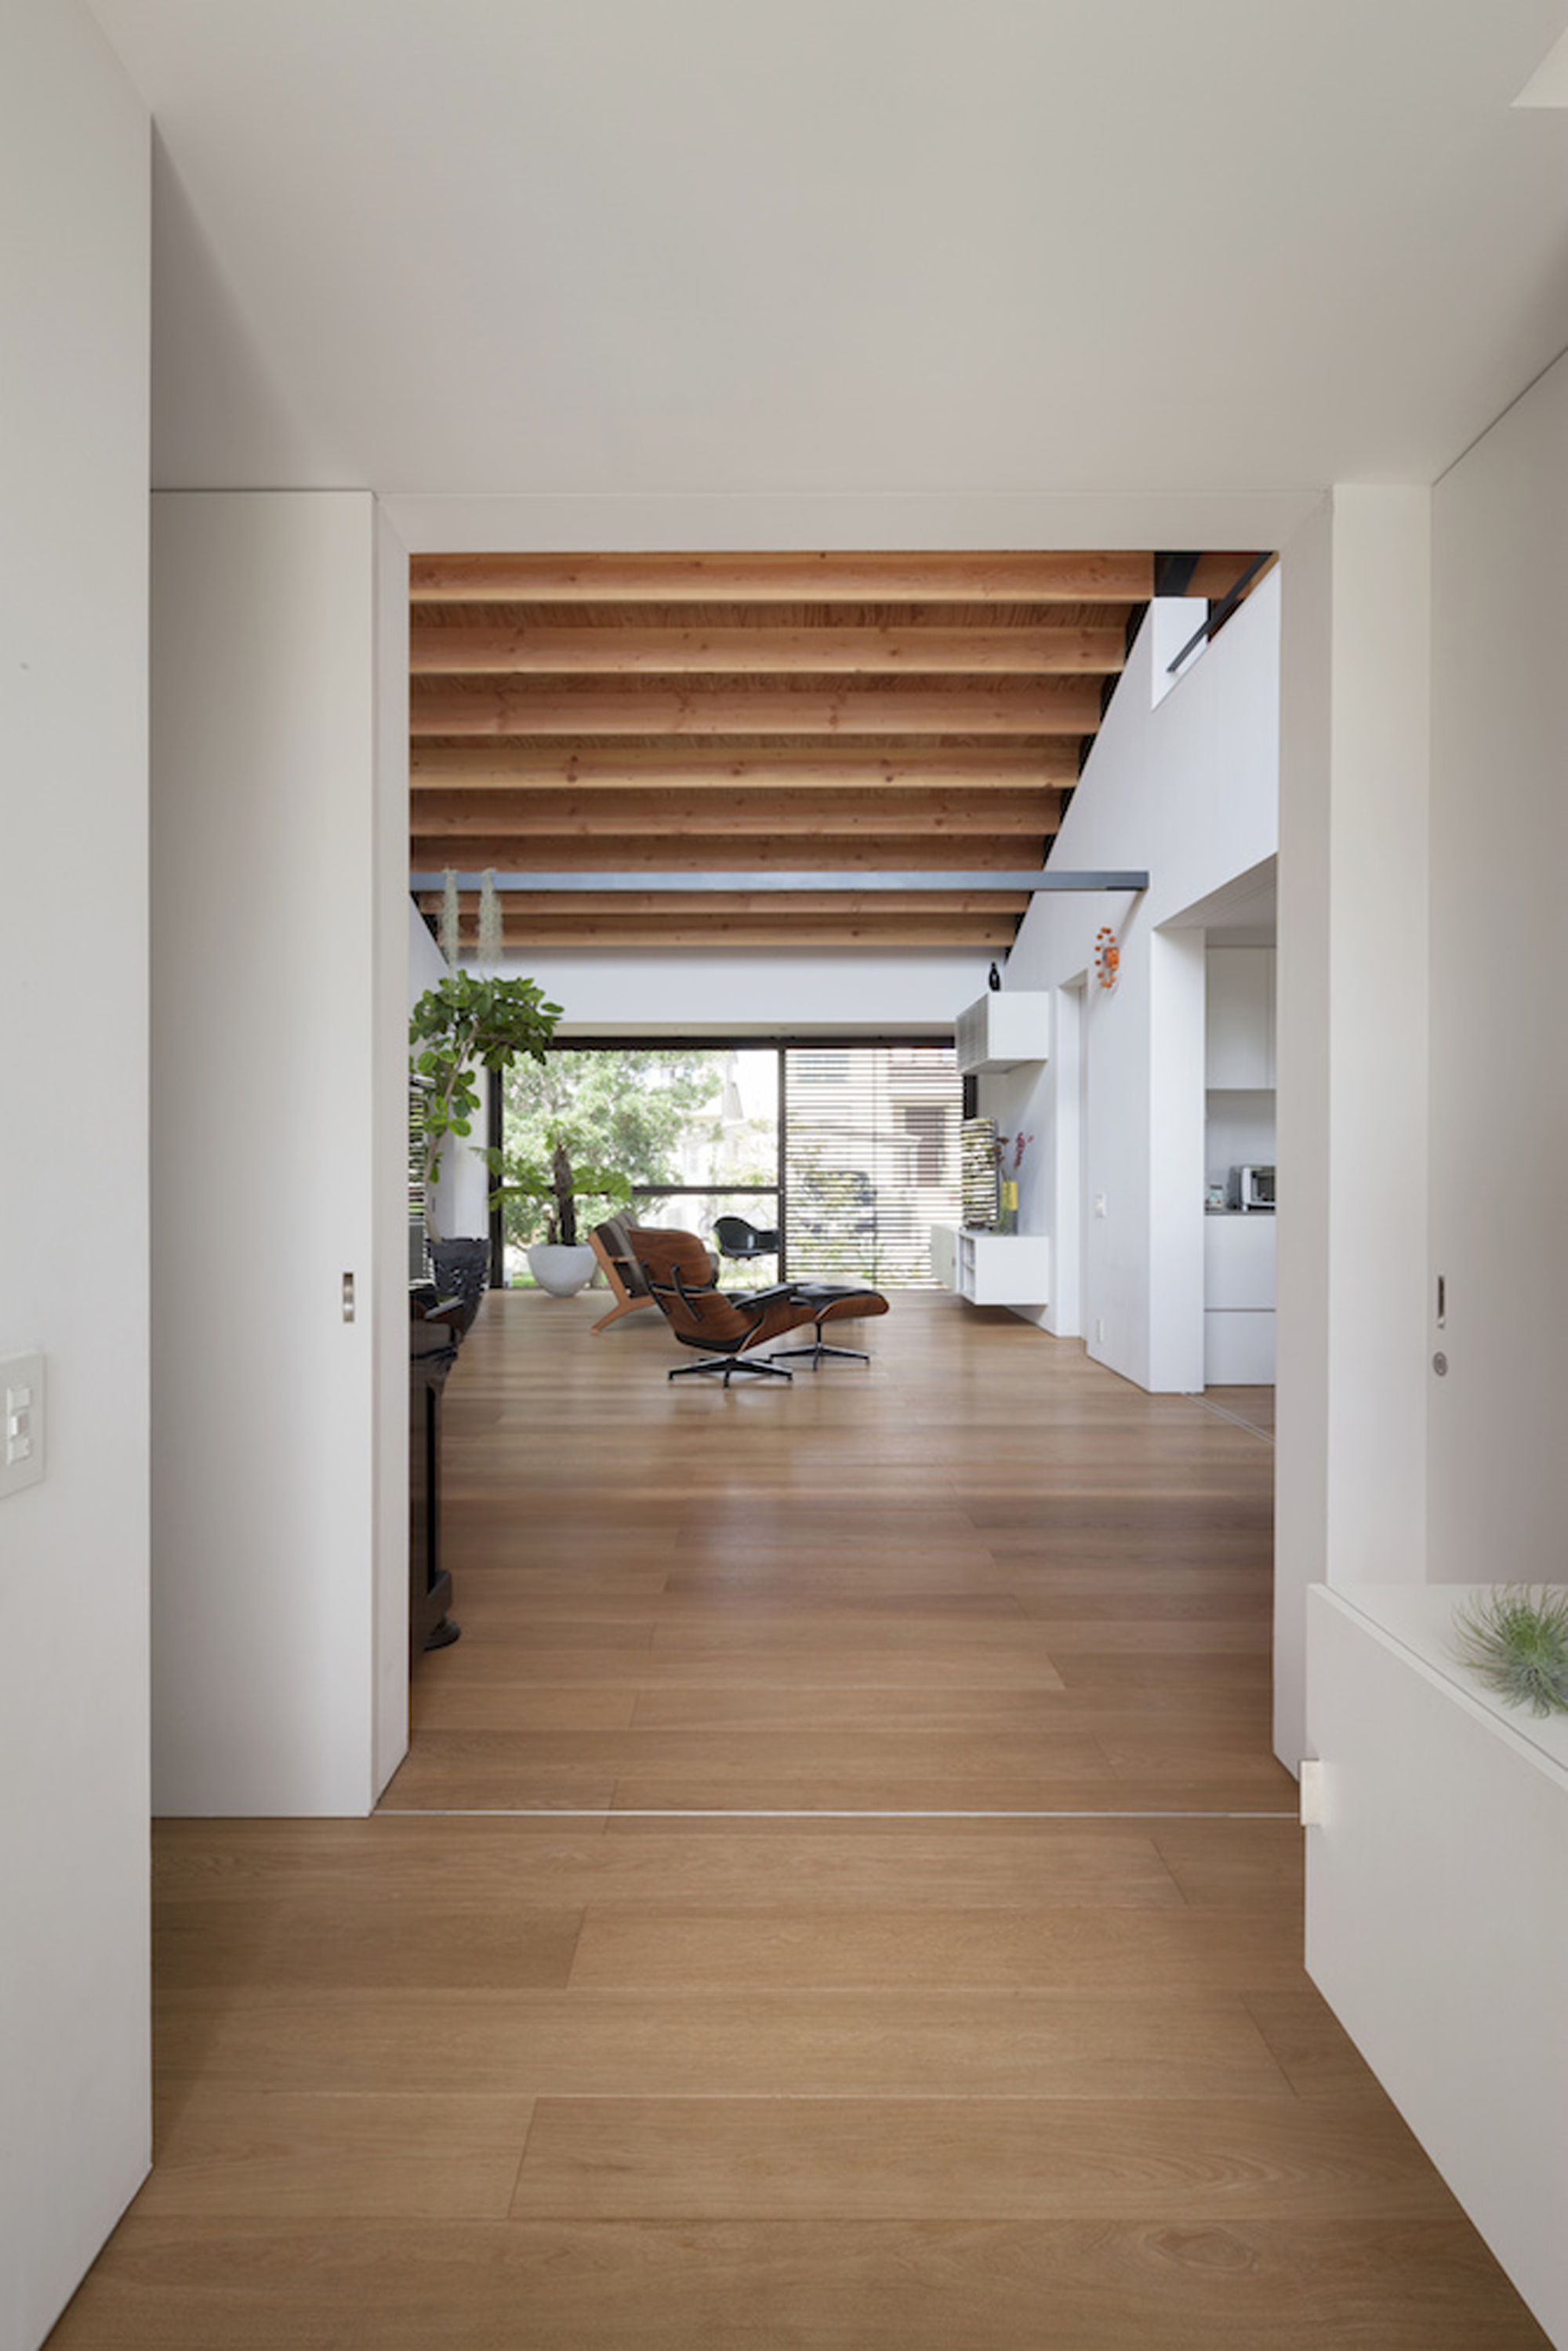 52eb1e82e8e44e981a0000a3_house-with-a-large-hipped-roof-naoi-architecture-design-office_housewithlhr_16